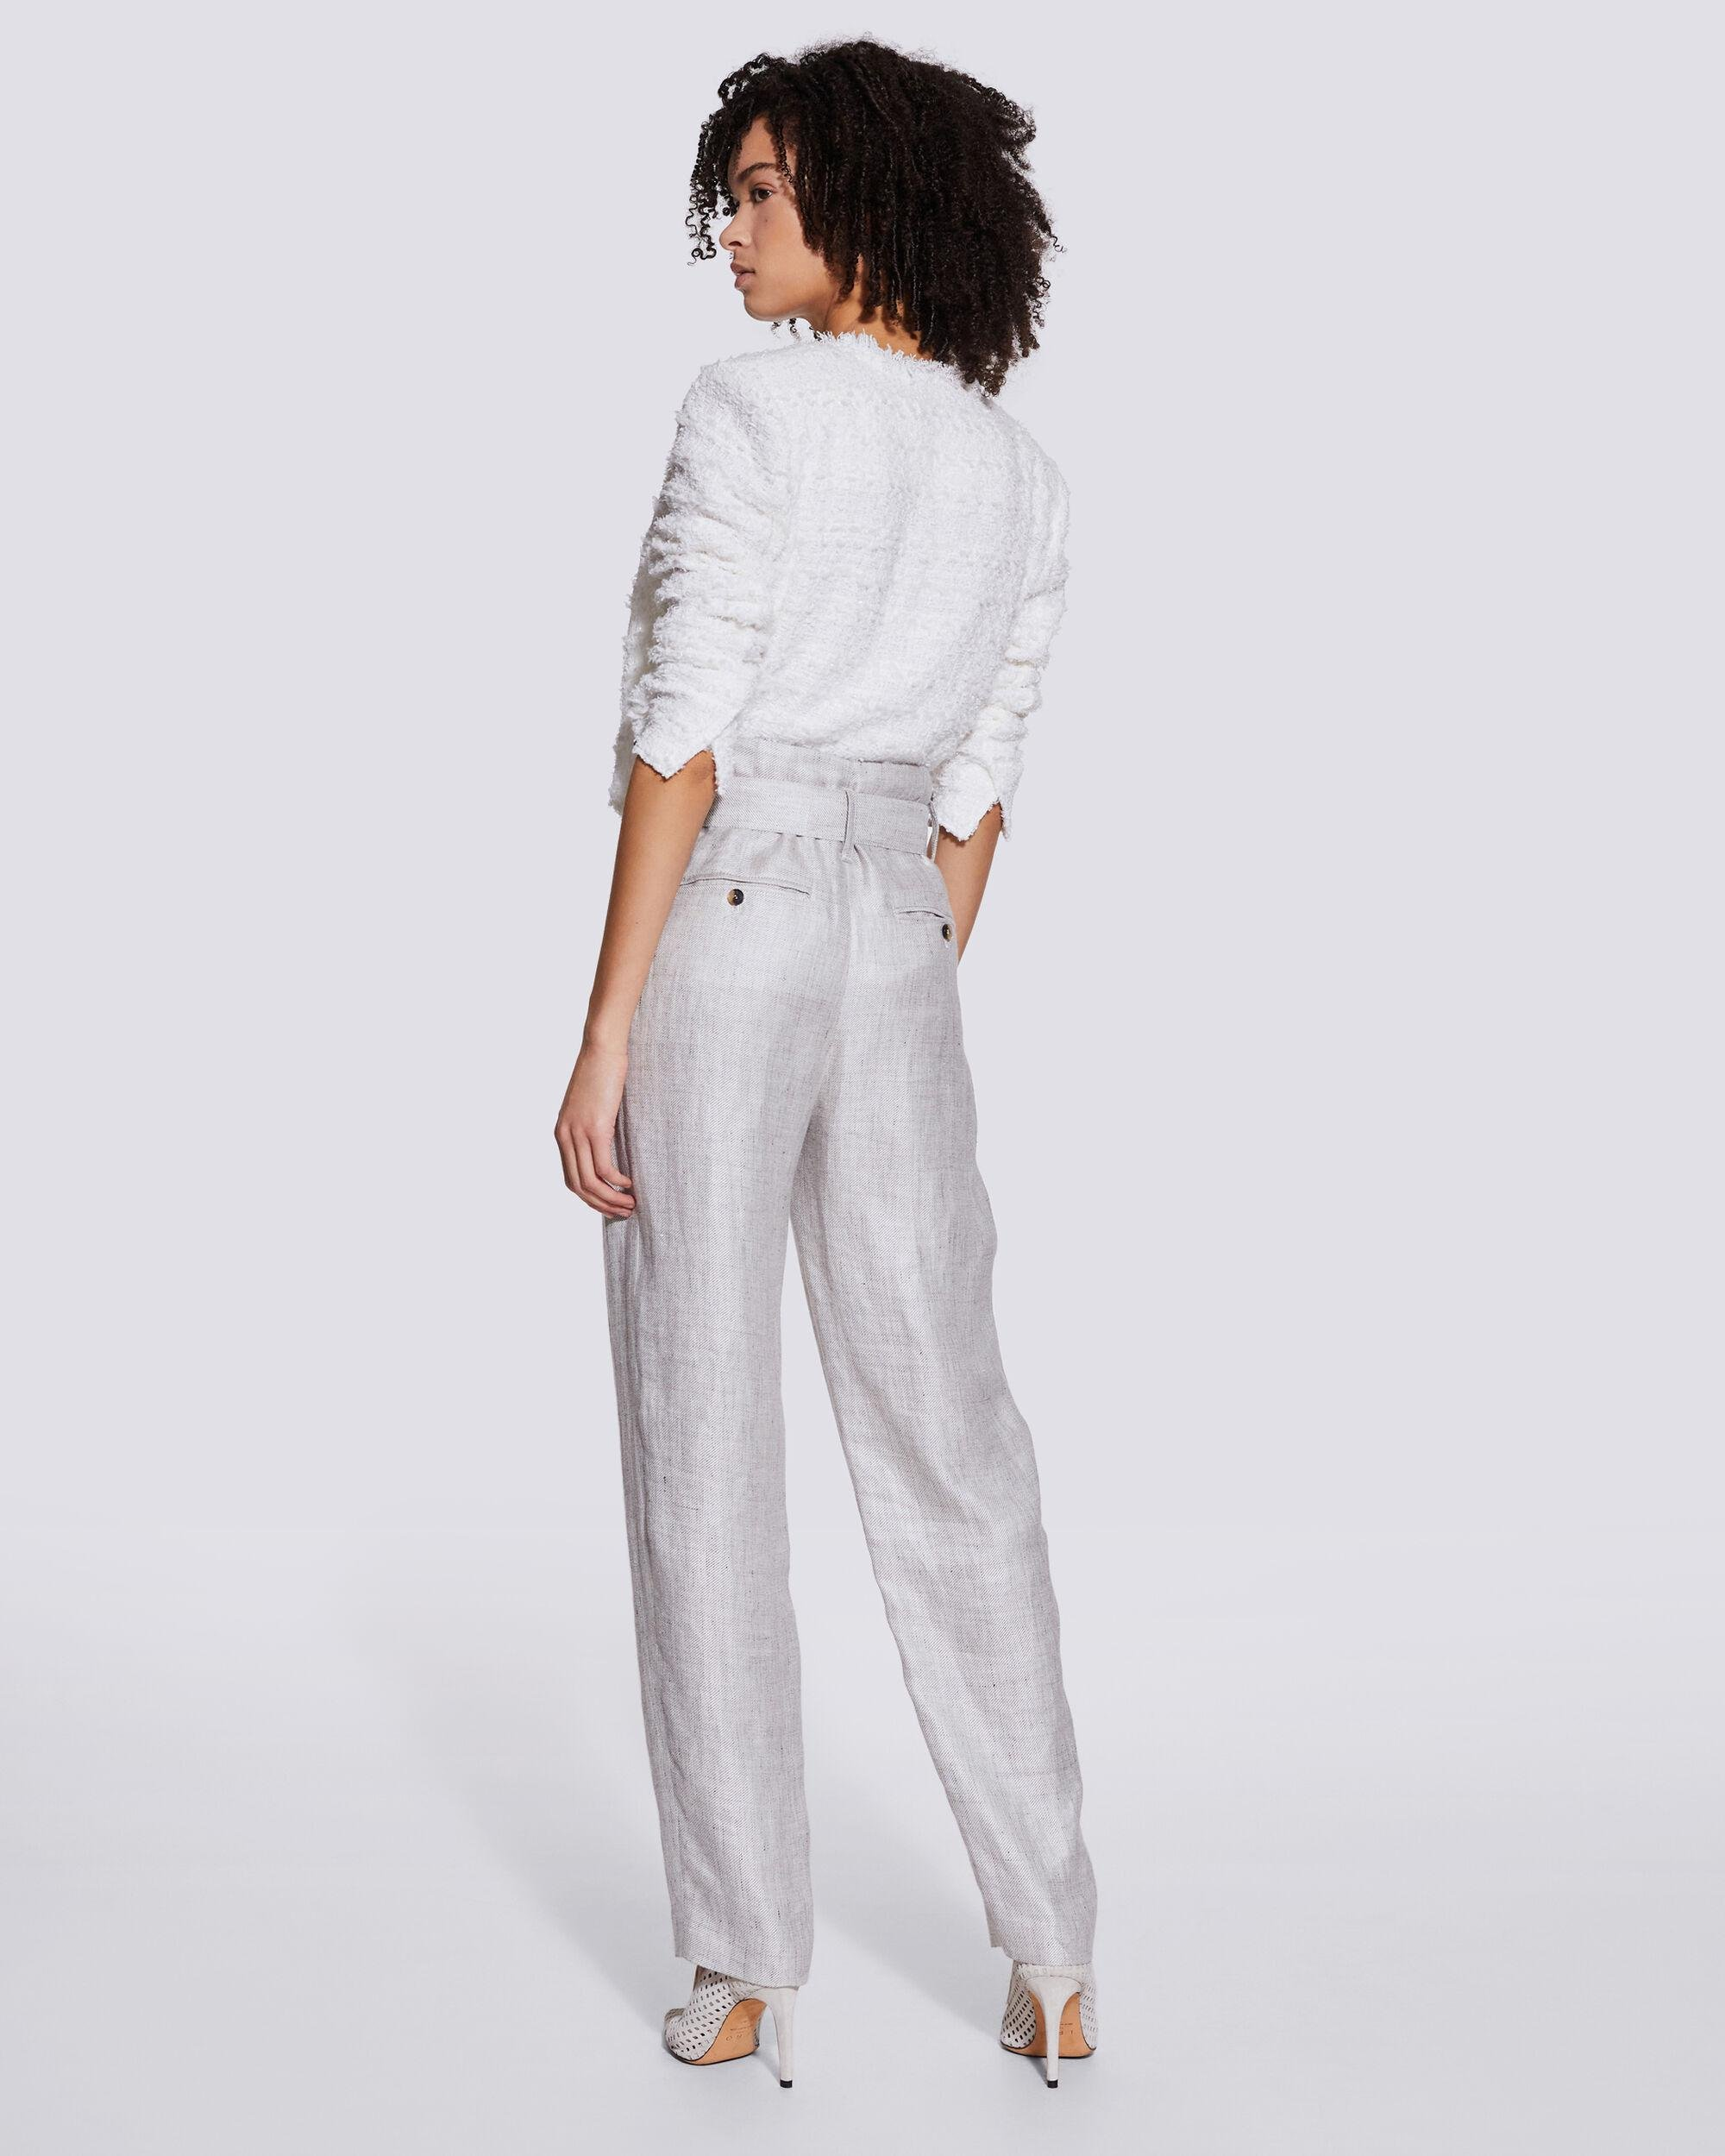 NAJAVA BELTED HIGH WAIST TROUSERS 2